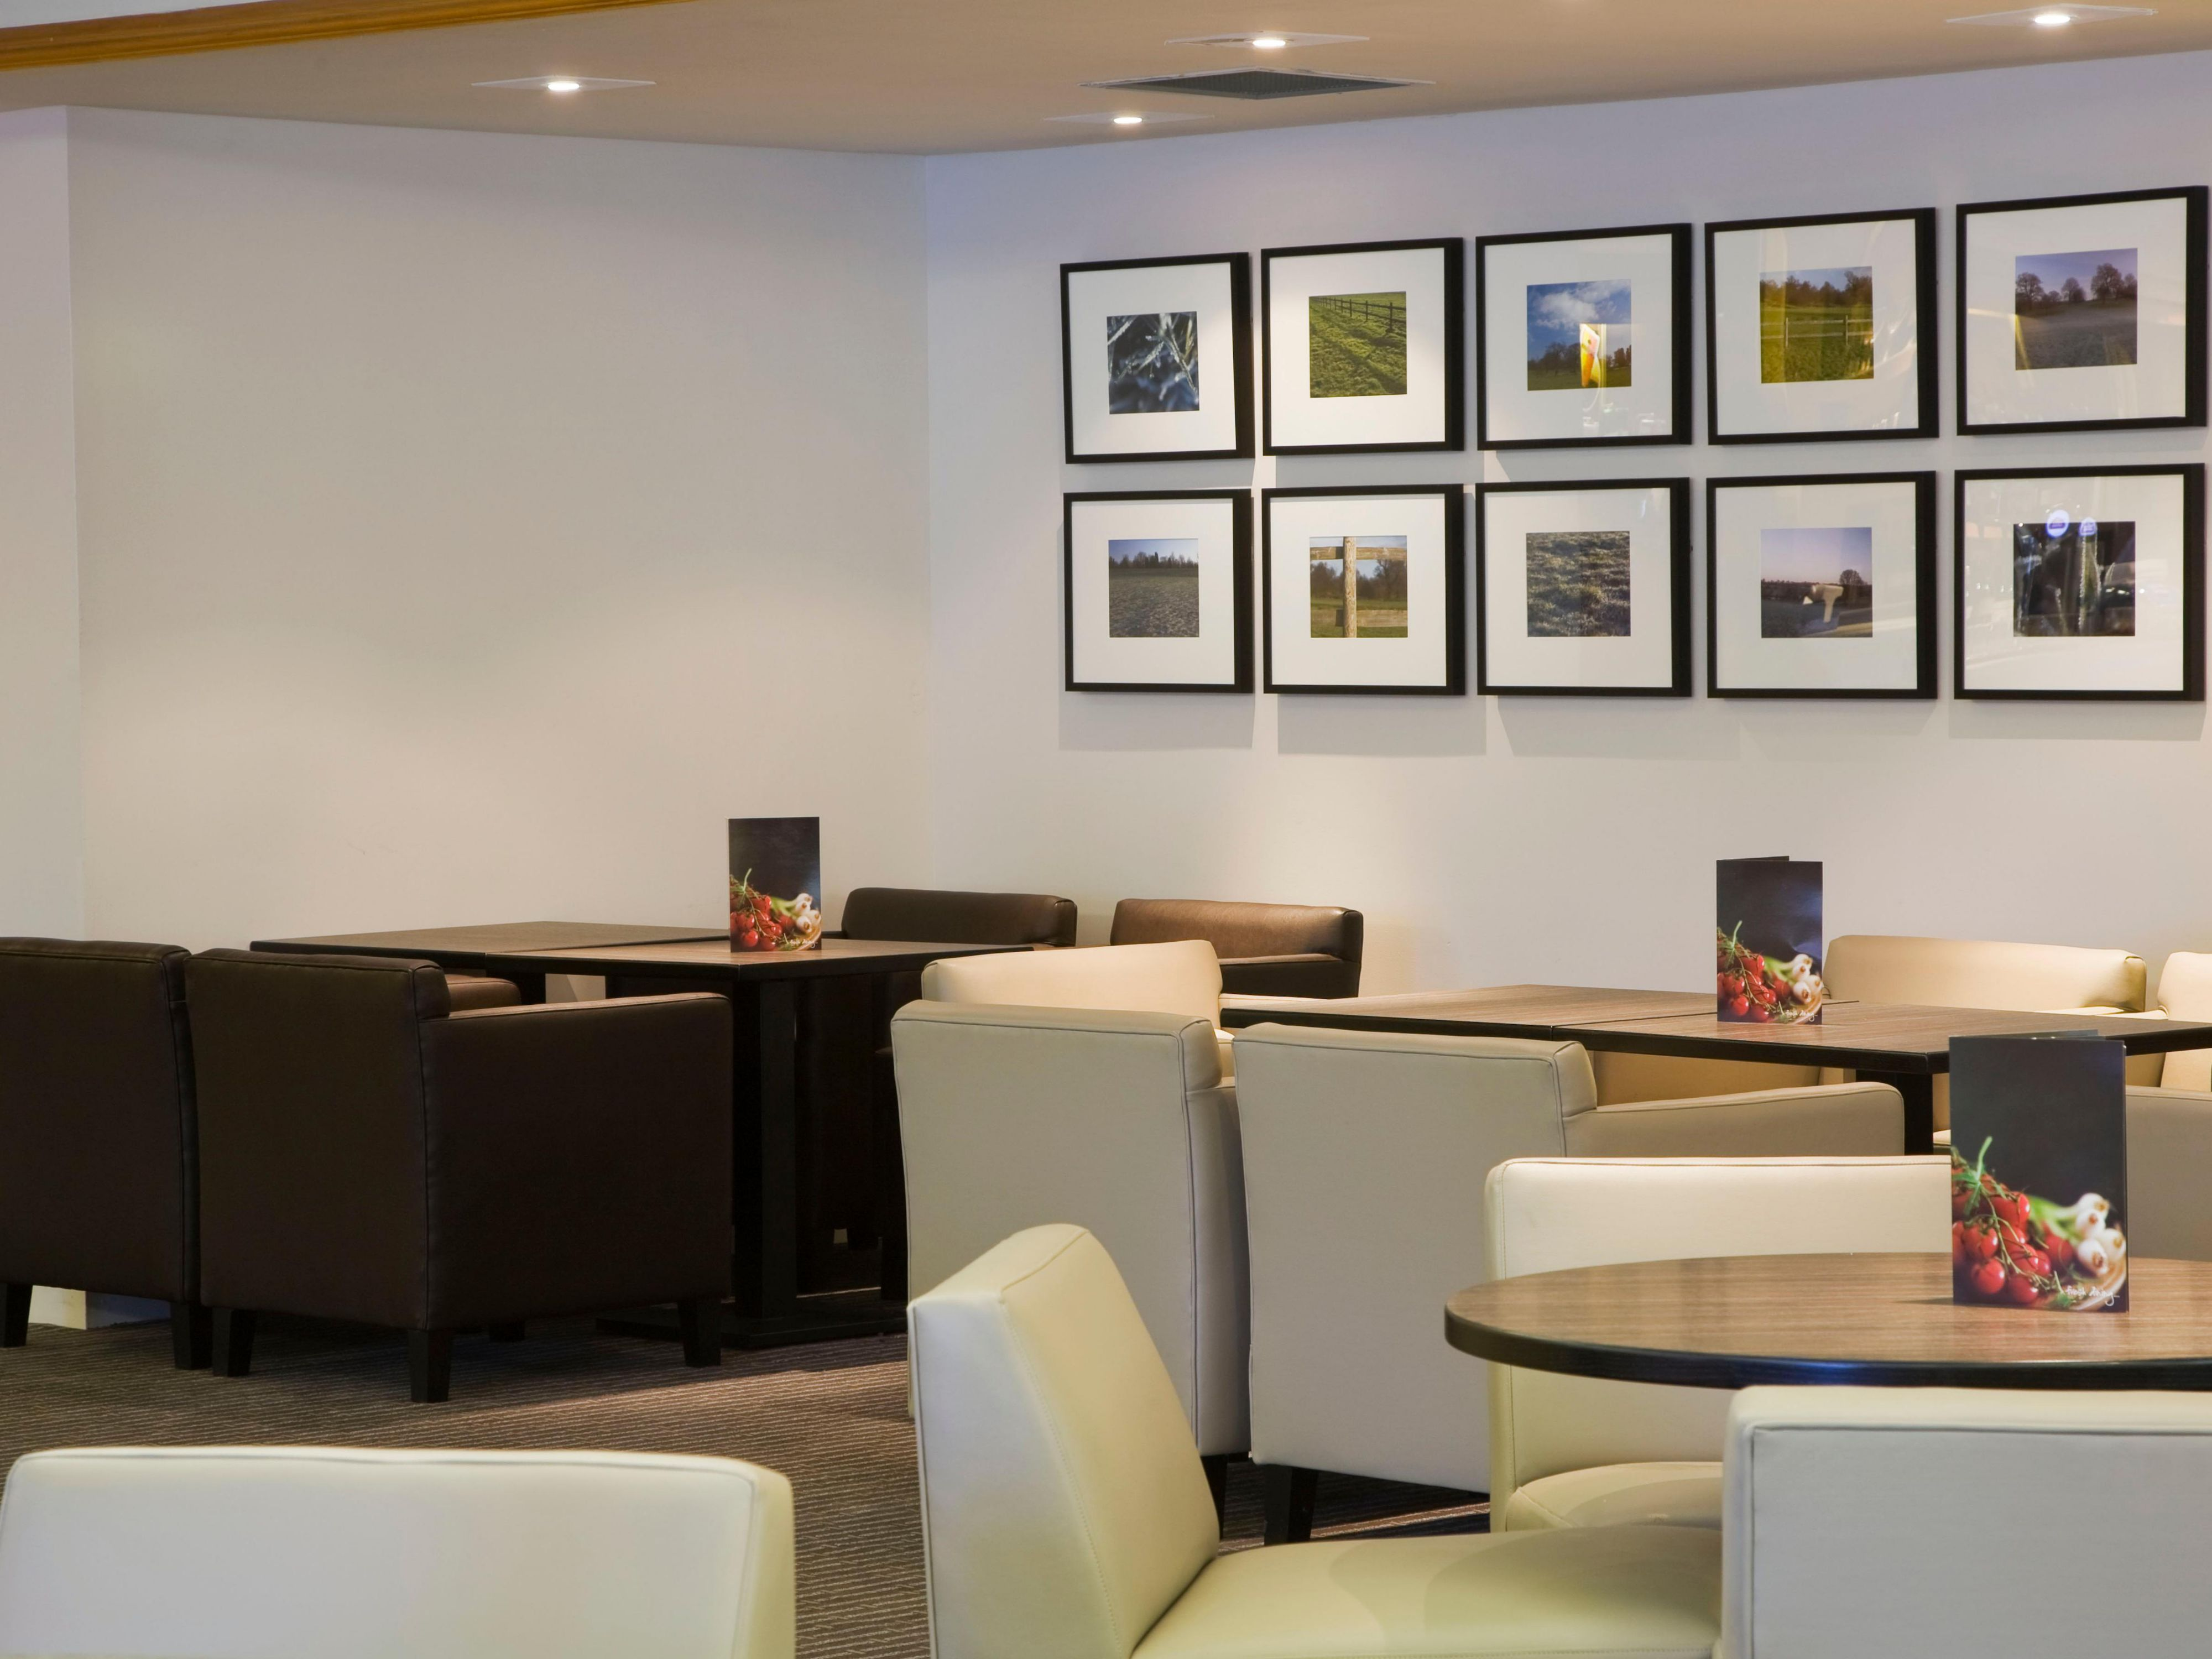 Bar and Lounge - perfect for social gatherings